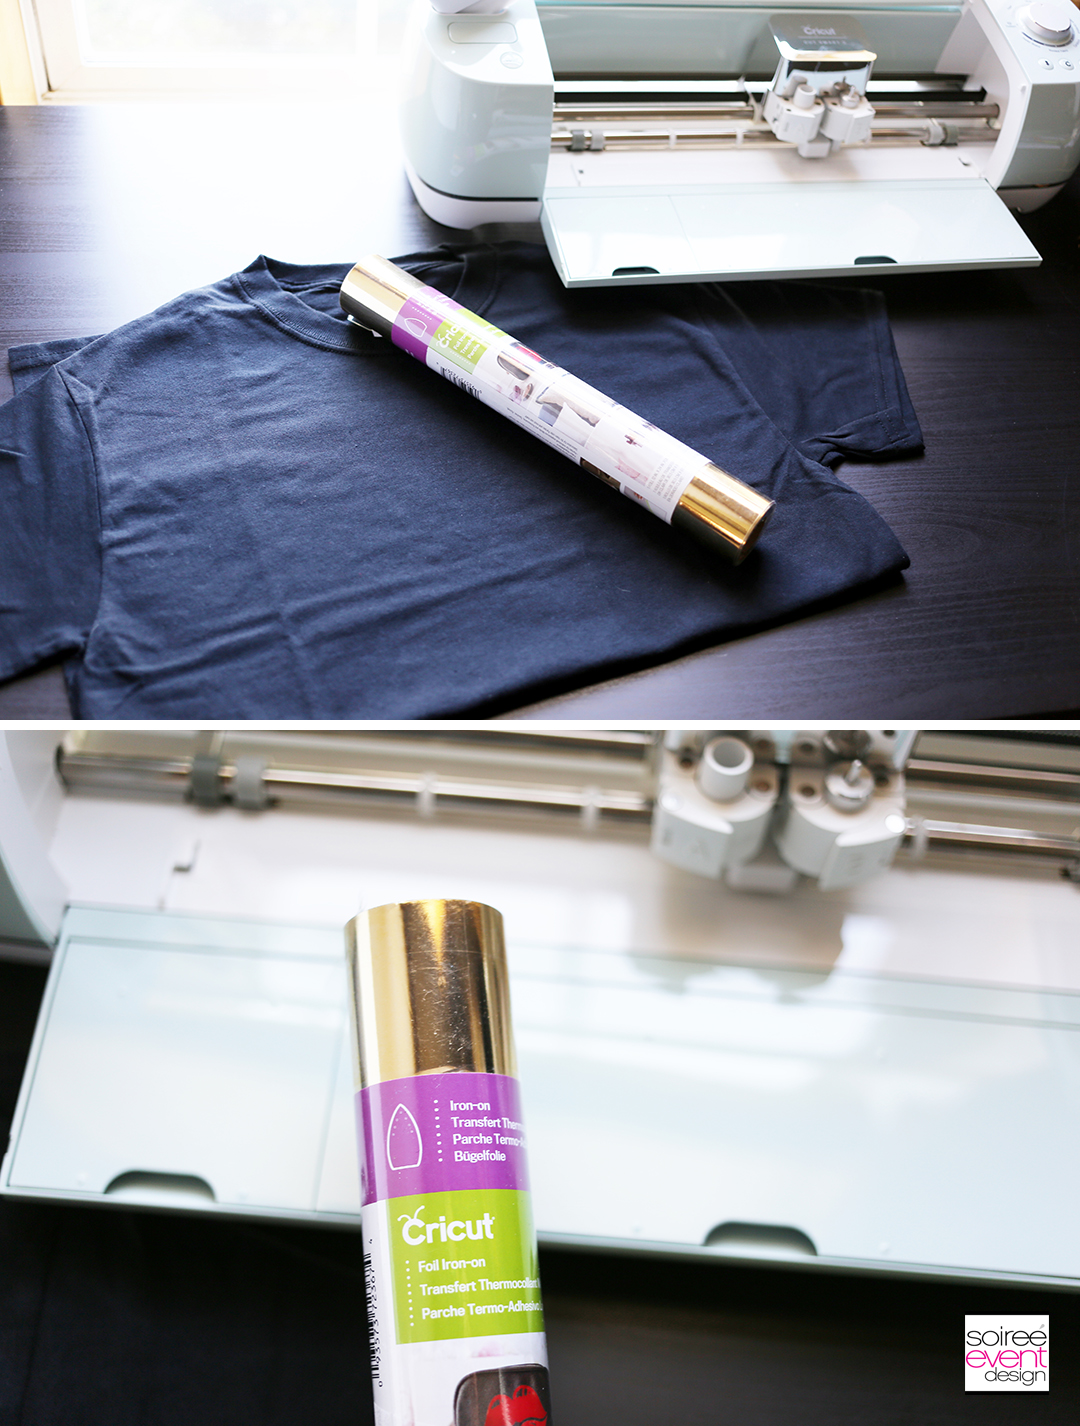 Make Tshirts with Cricut for Sweet 16 Party - supplies